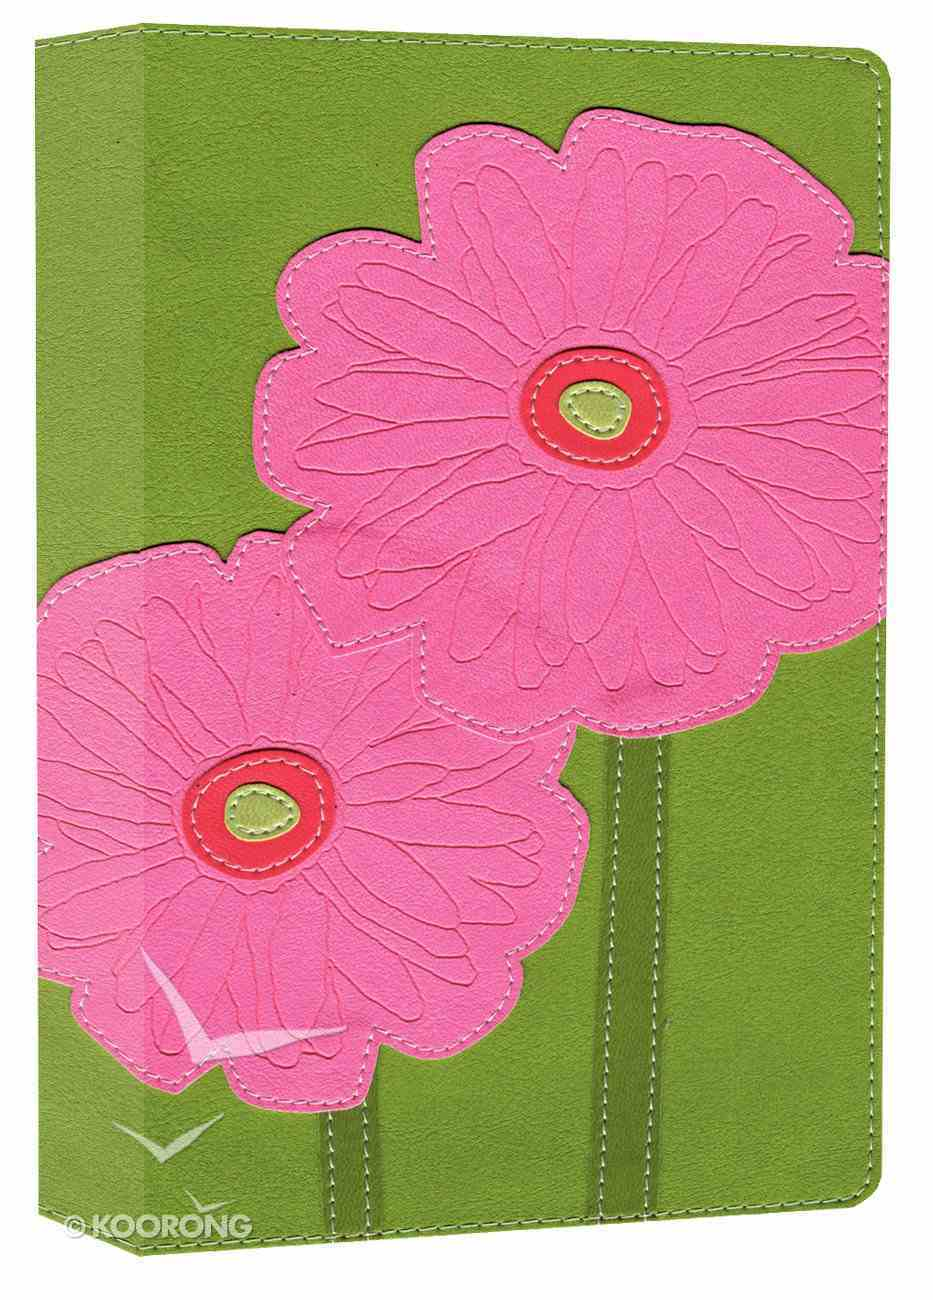 NIV Thinline Bloom Bible Gerbera Daisies (Red Letter Edition) Premium Imitation Leather